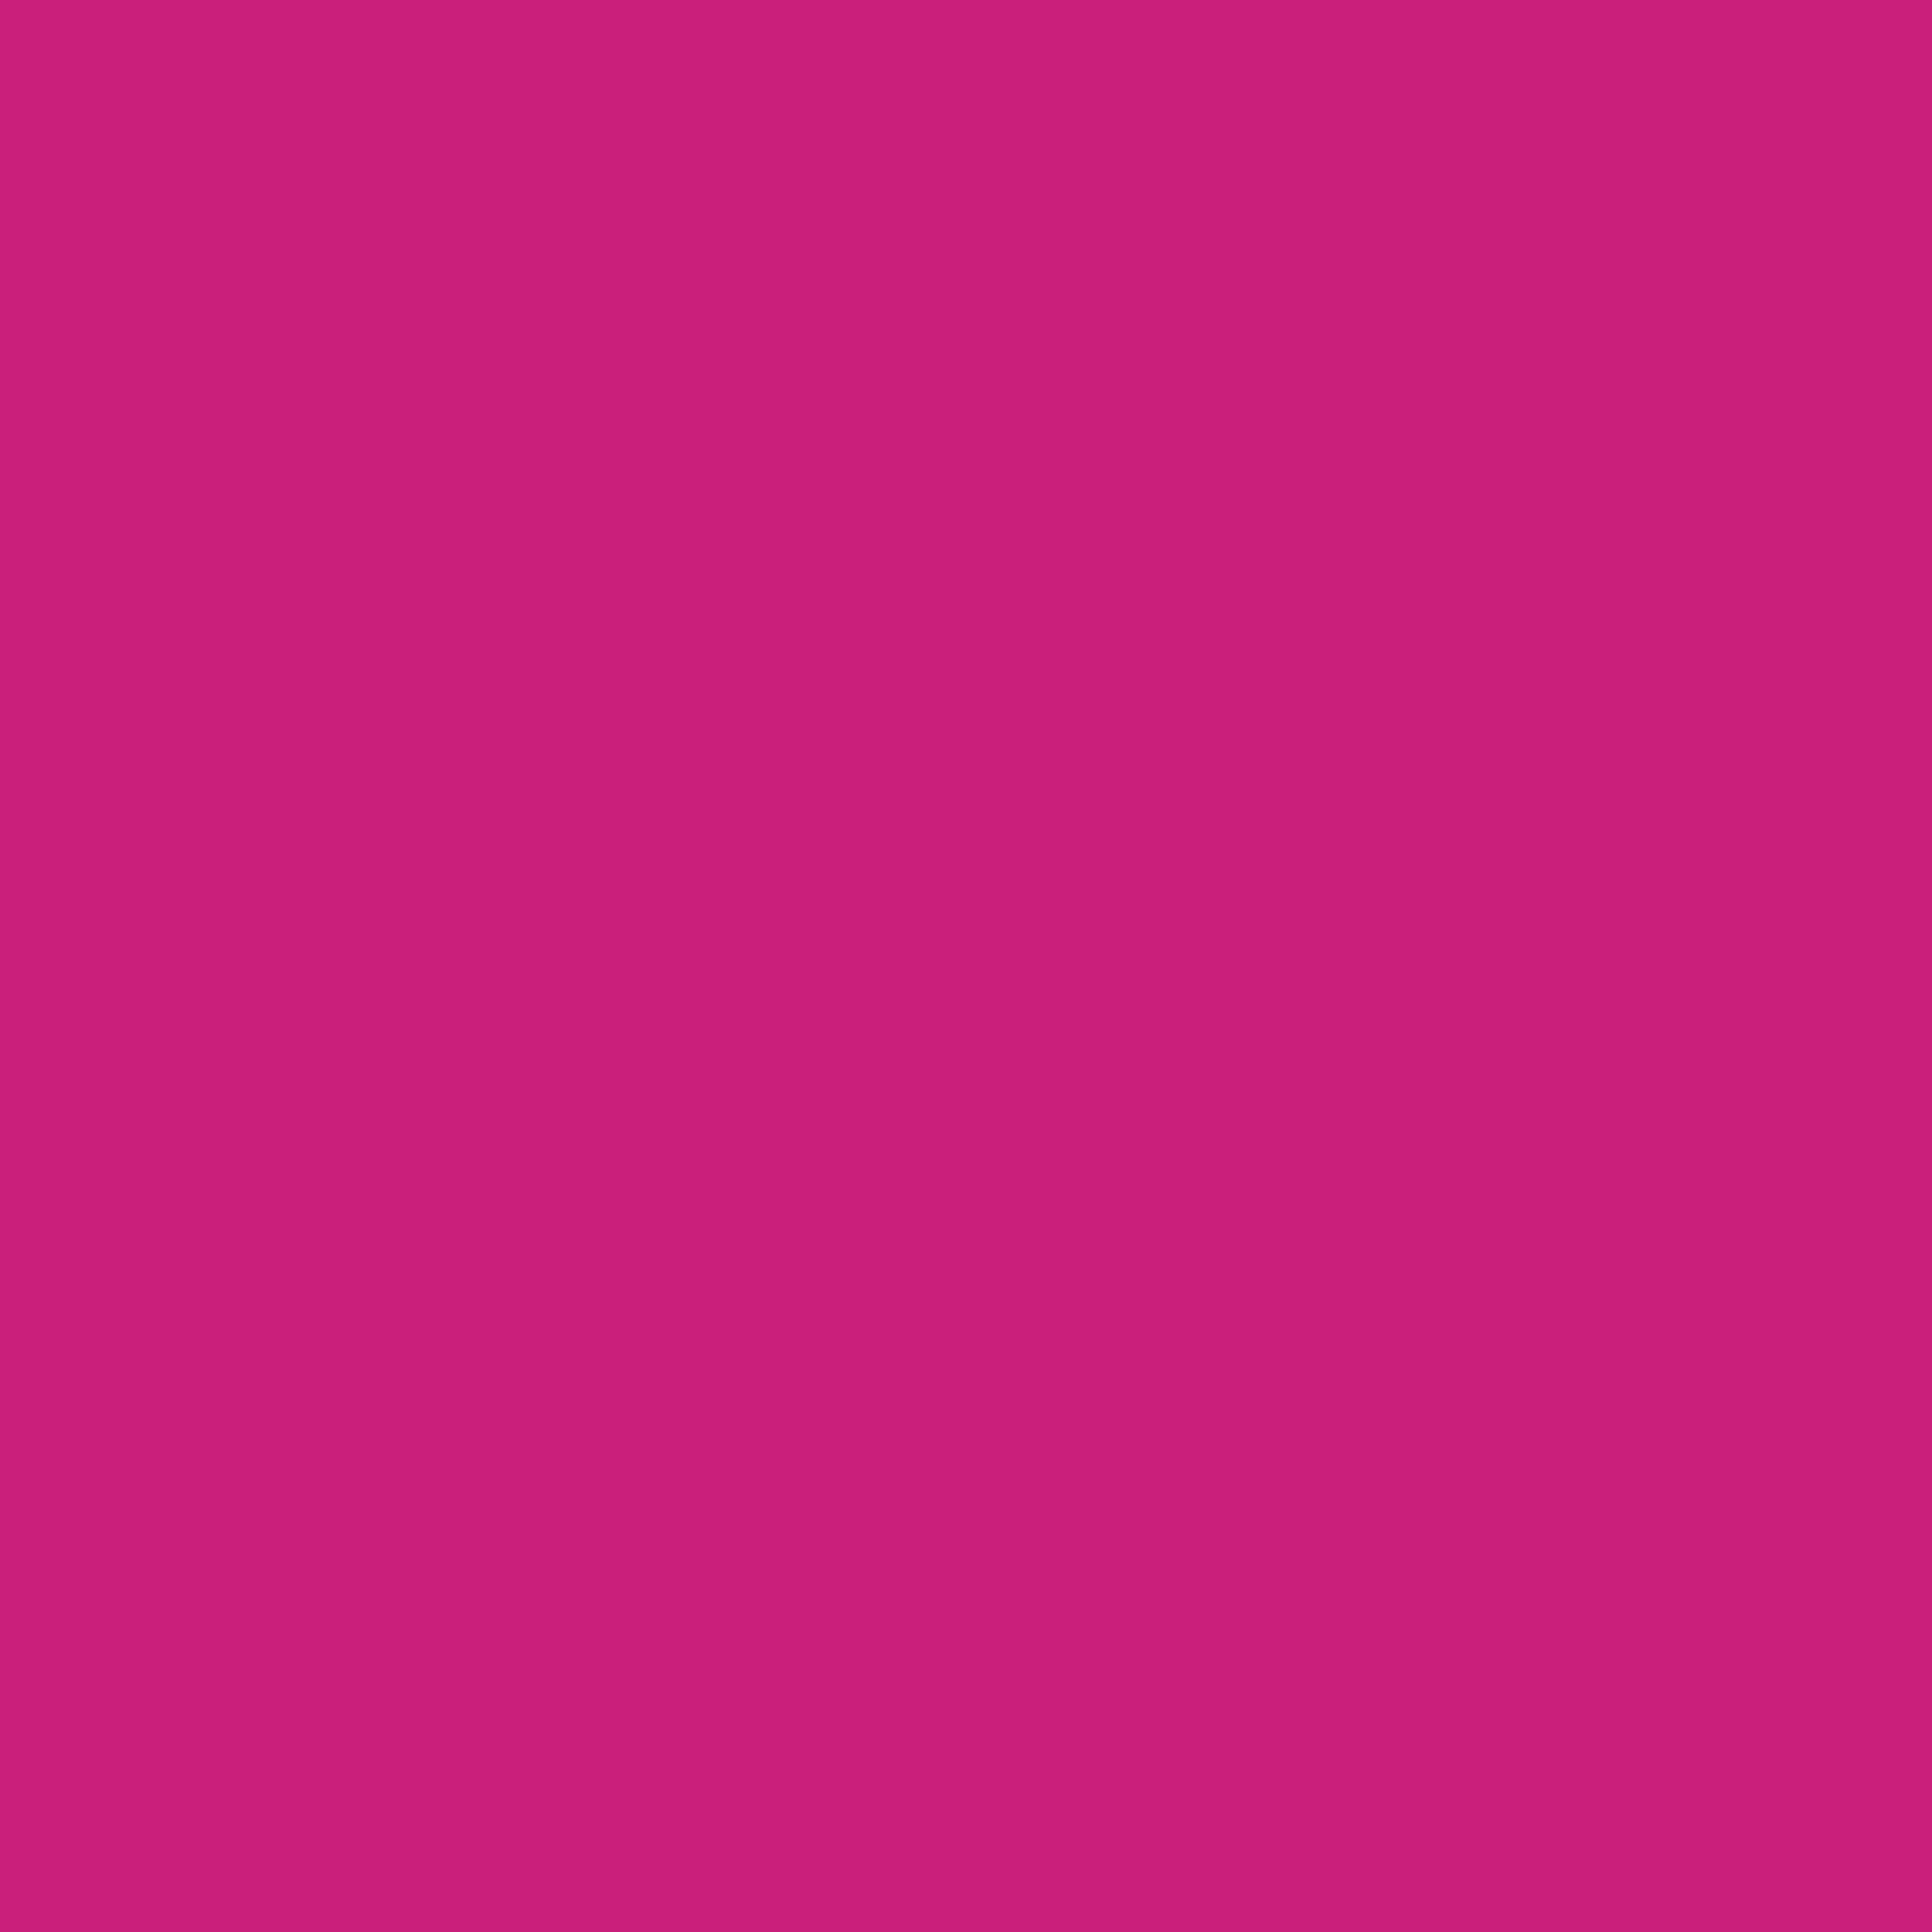 2732x2732 Magenta Dye Solid Color Background